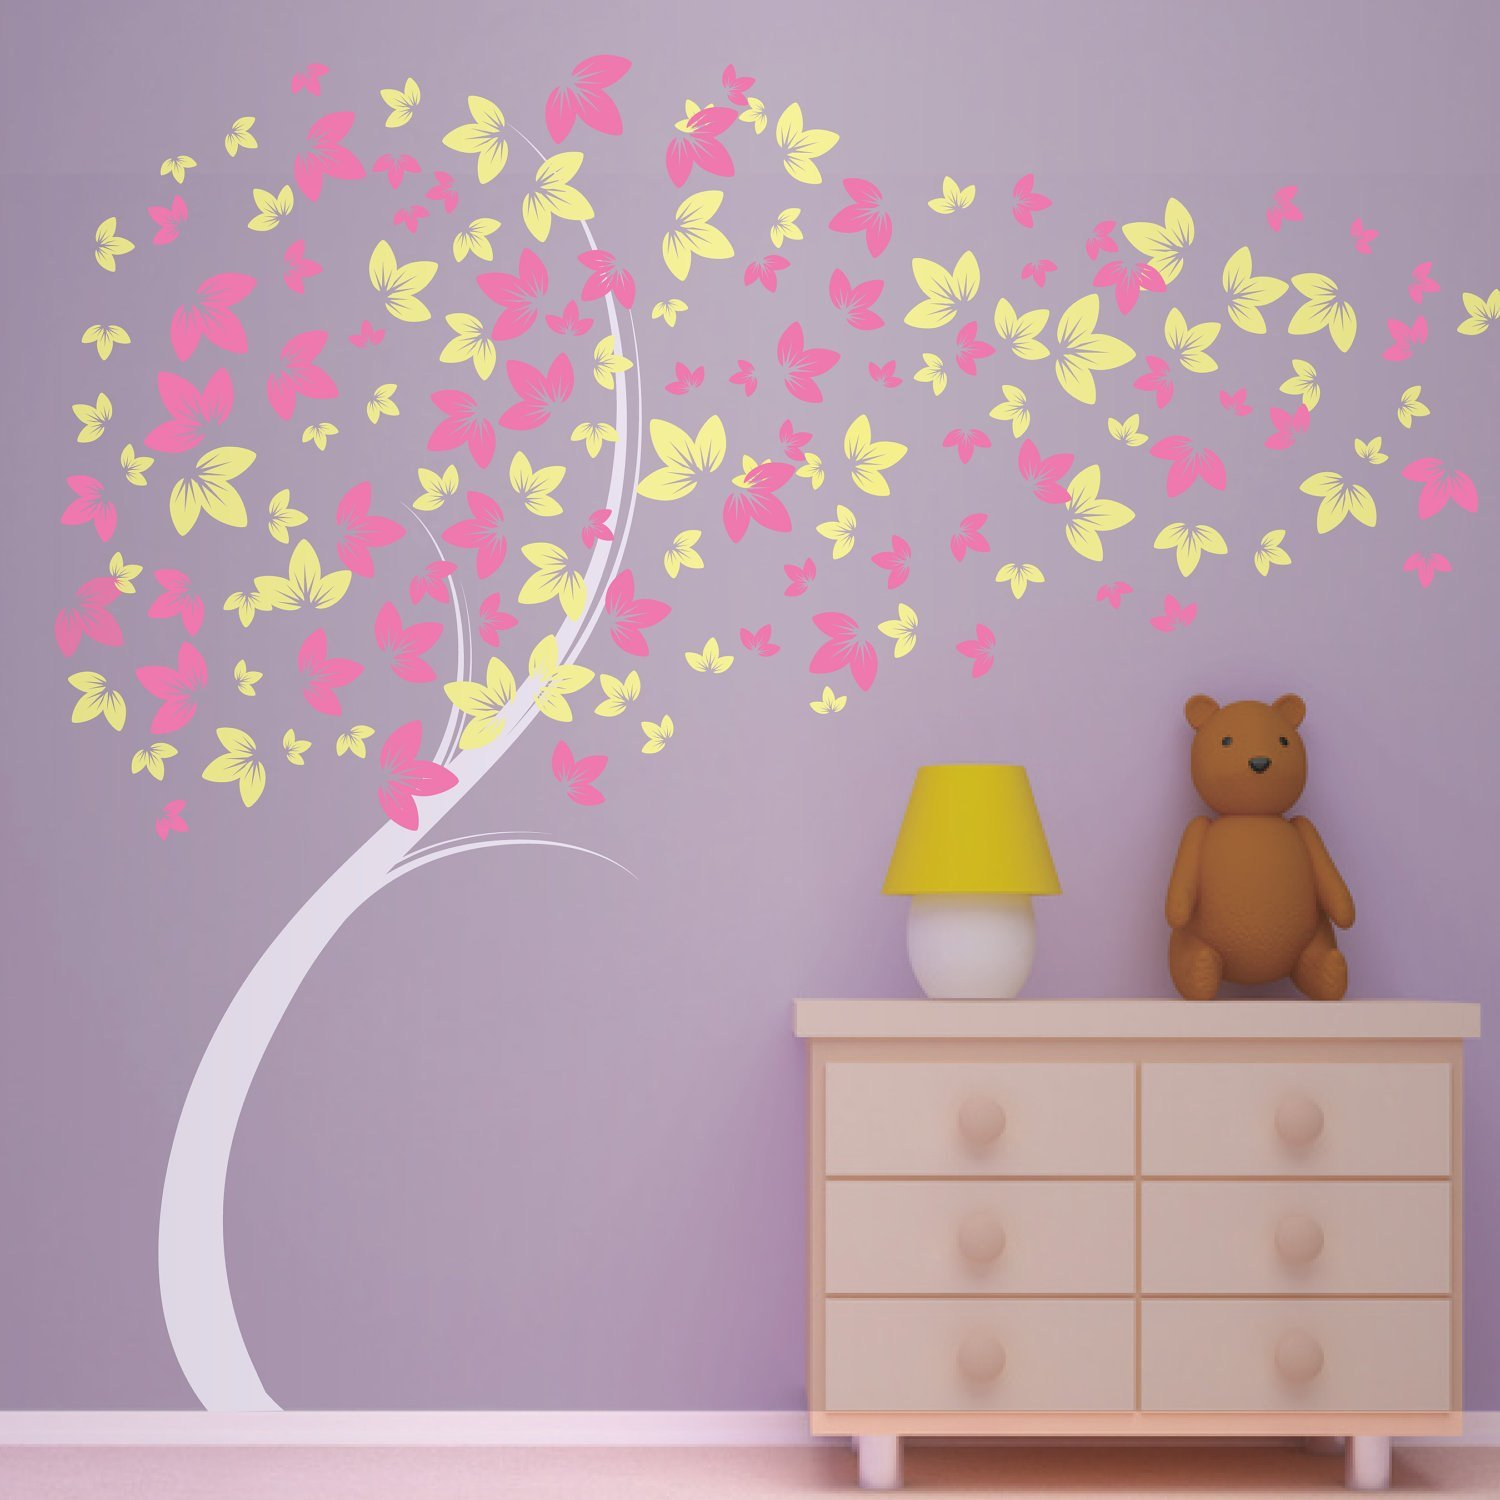 Best Curvy Blowing Tree Vinyl Wall Decal Great For Little With Pictures